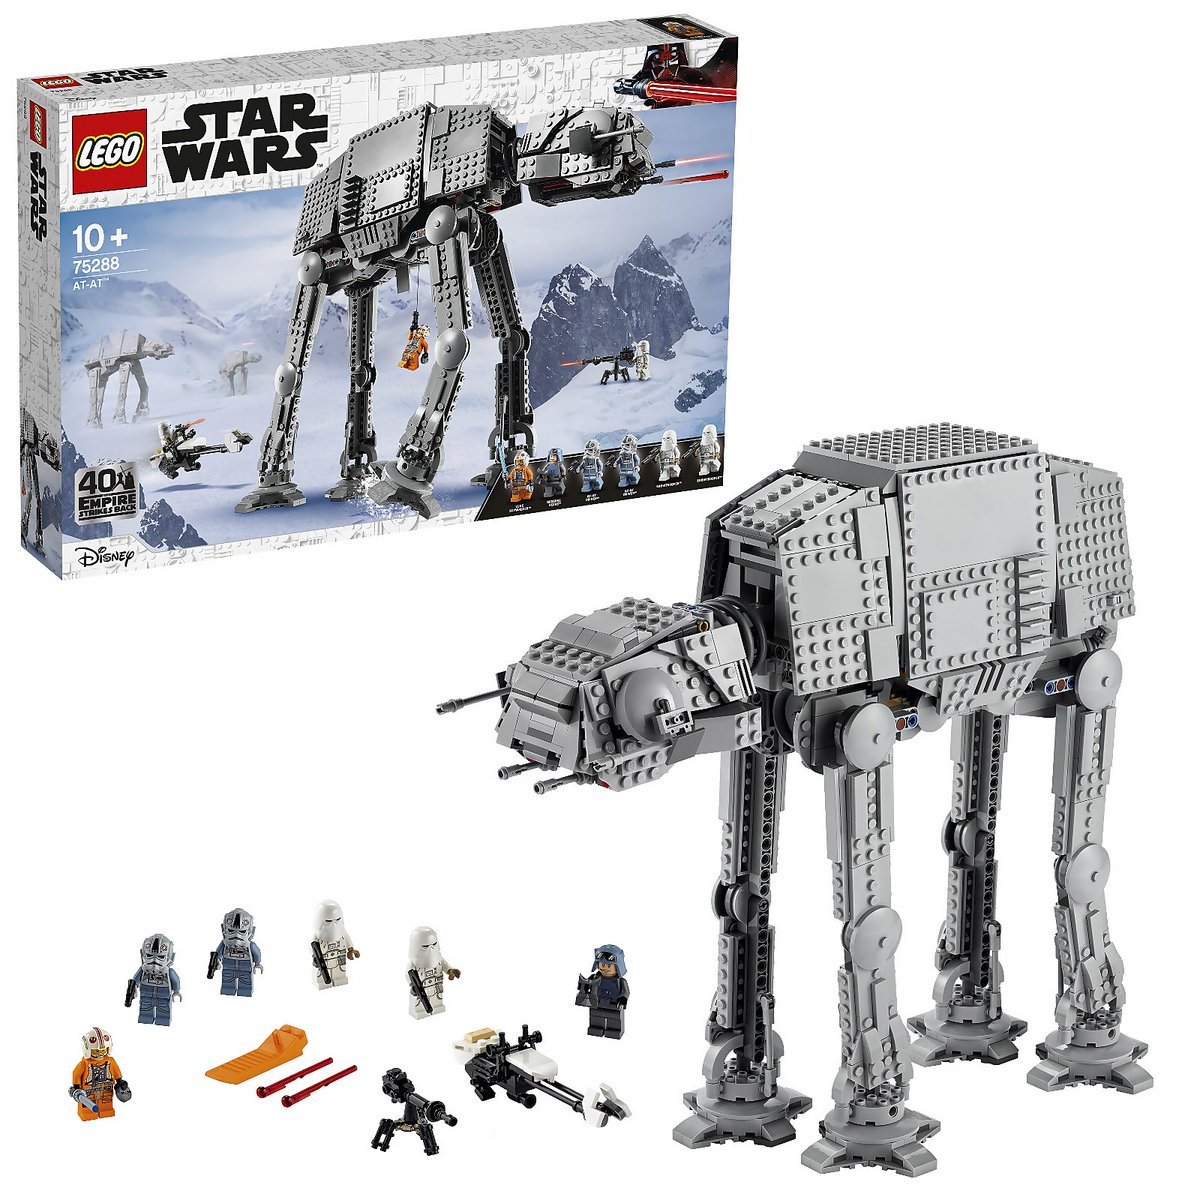 NEW from #lego #starwars  https:// bit.ly/2yrGs2H     #discdrops #maythe4th<br>http://pic.twitter.com/8uQ05S7xTR